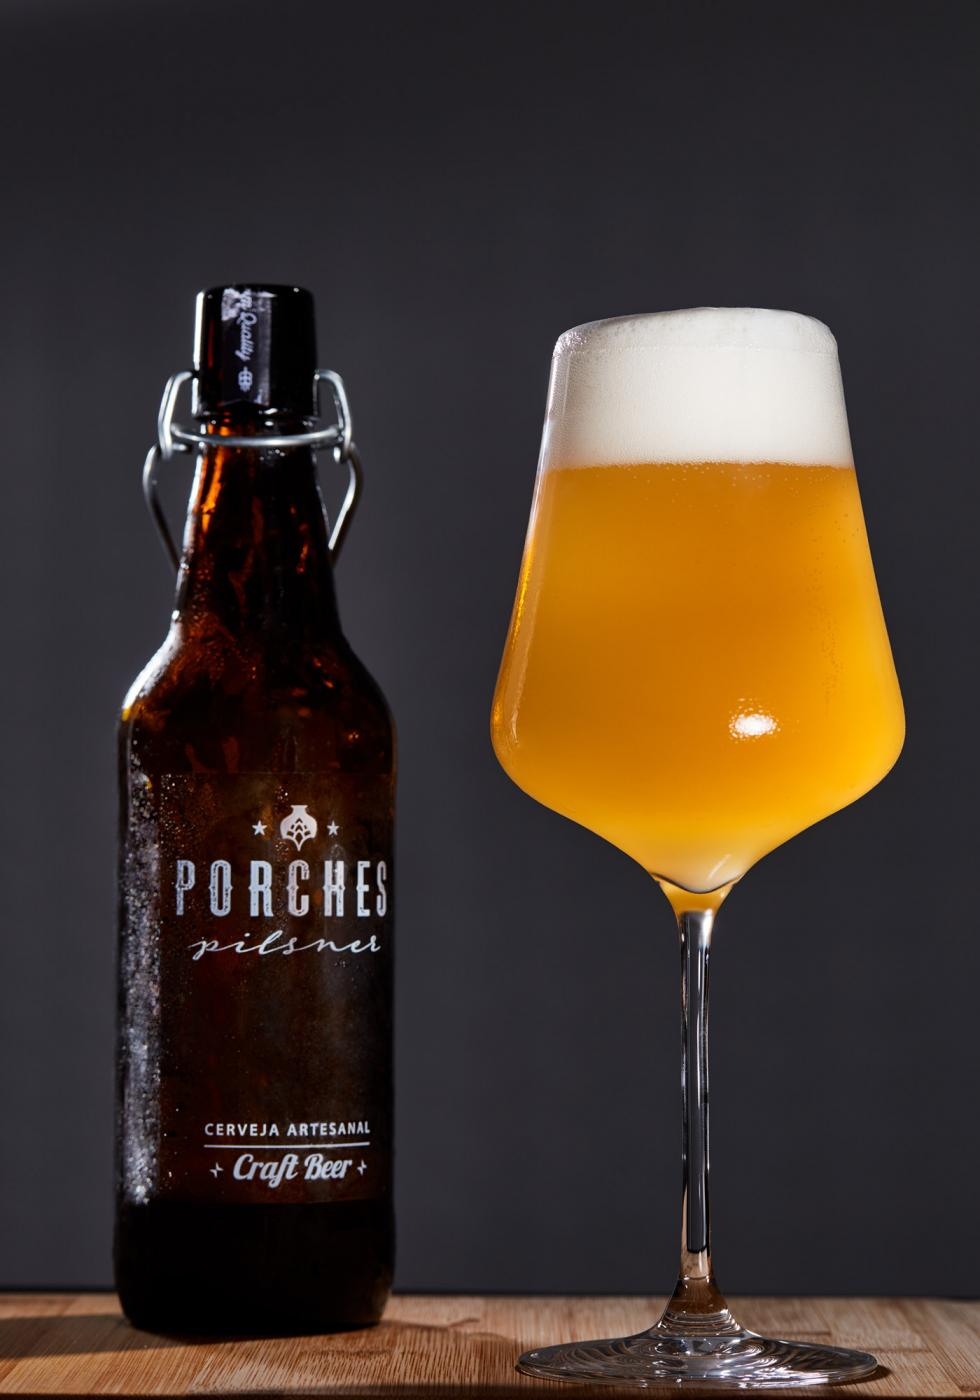 Beer, Food And Music: This Perfect Mix Is Served In Porches Craft Beer Fest porches craft beer Beer, Food And Music: This Perfect Mix Is Served In Porches Craft Beer Fest porches craft beer pilsner 03 0